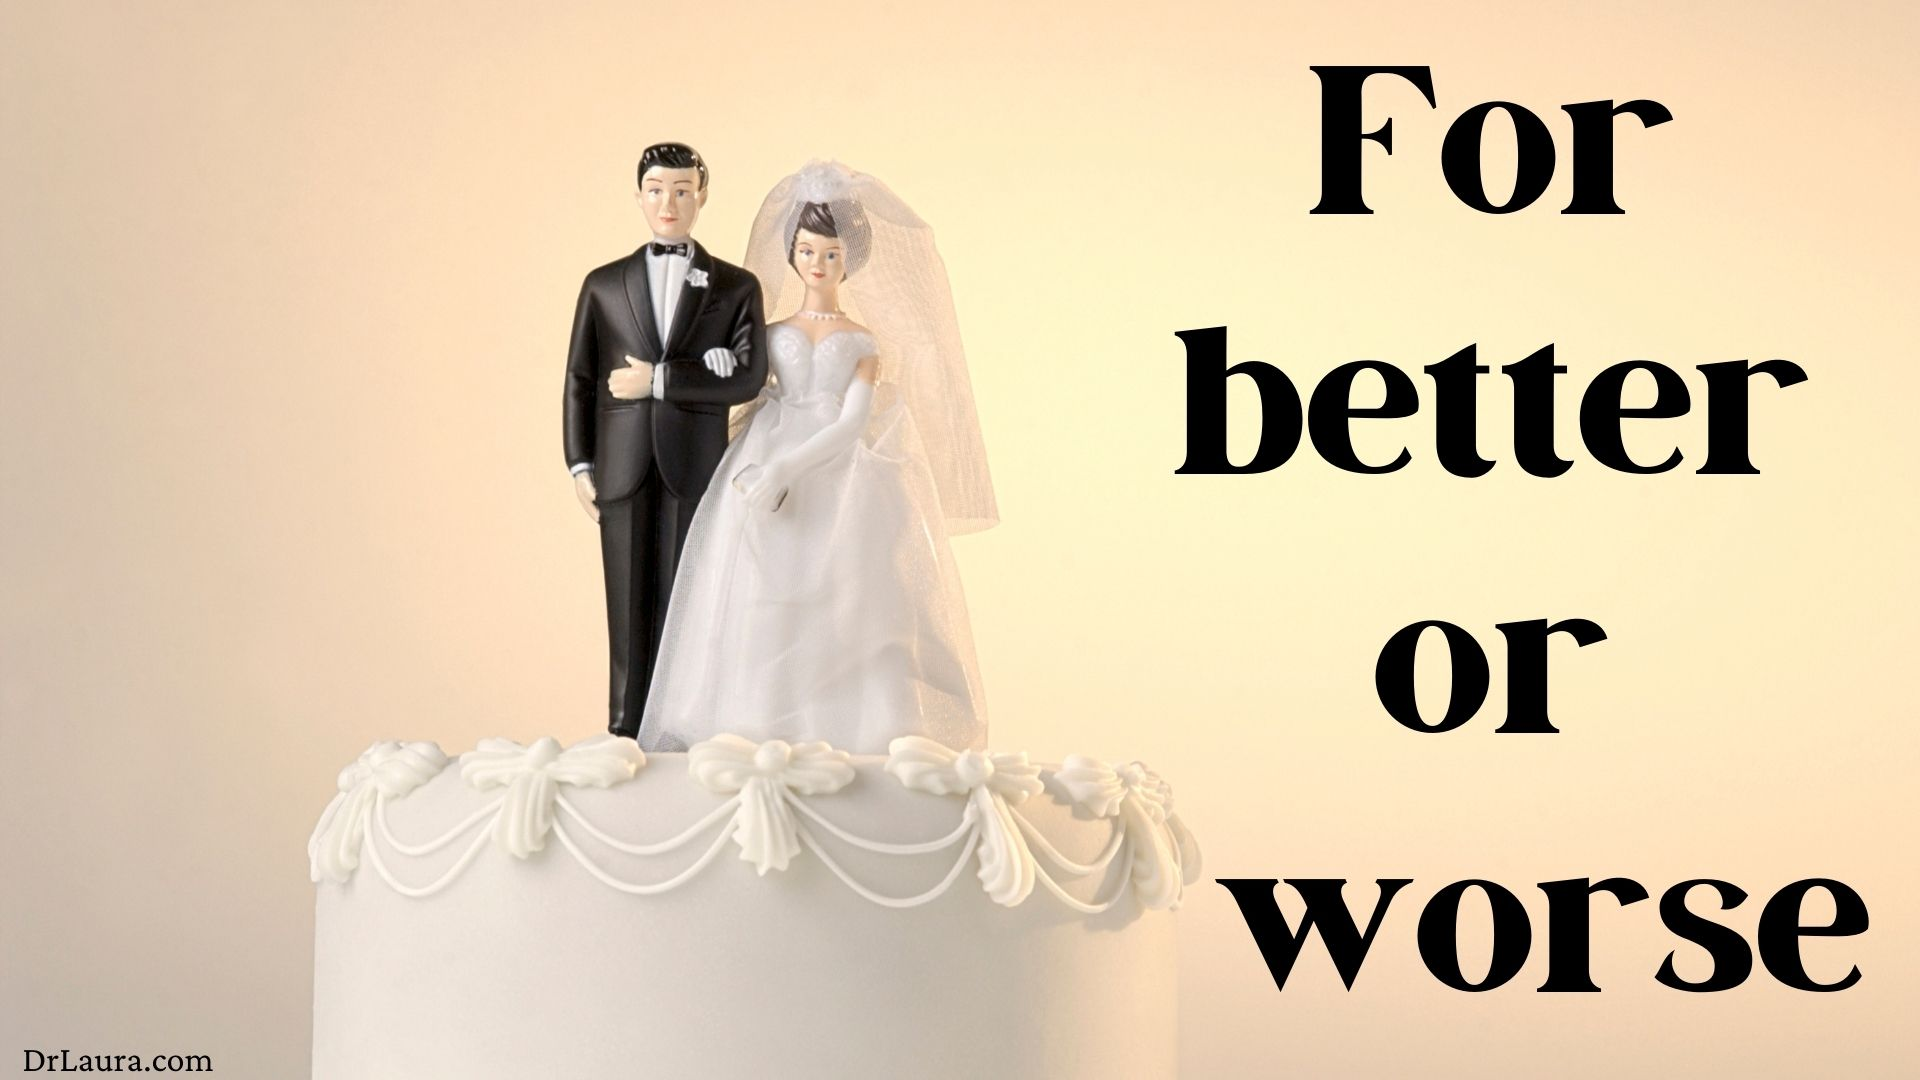 Email of the Day: We Vowed to Keep Our Marriage Strong